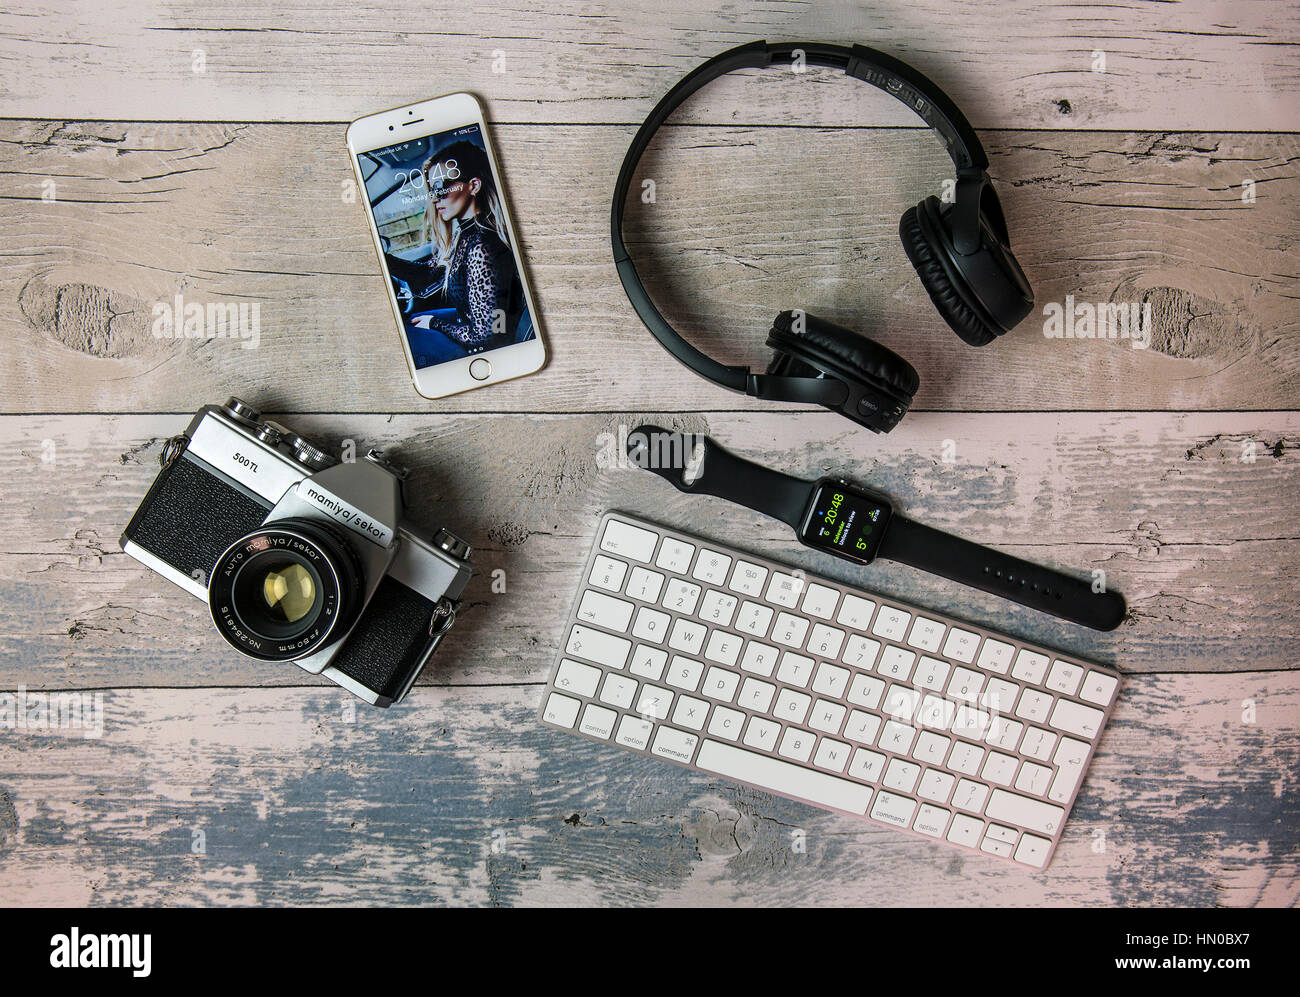 Flat Lay with old SLR film camera, iPhone, Apple watch, keyboard and headphones - Stock Image